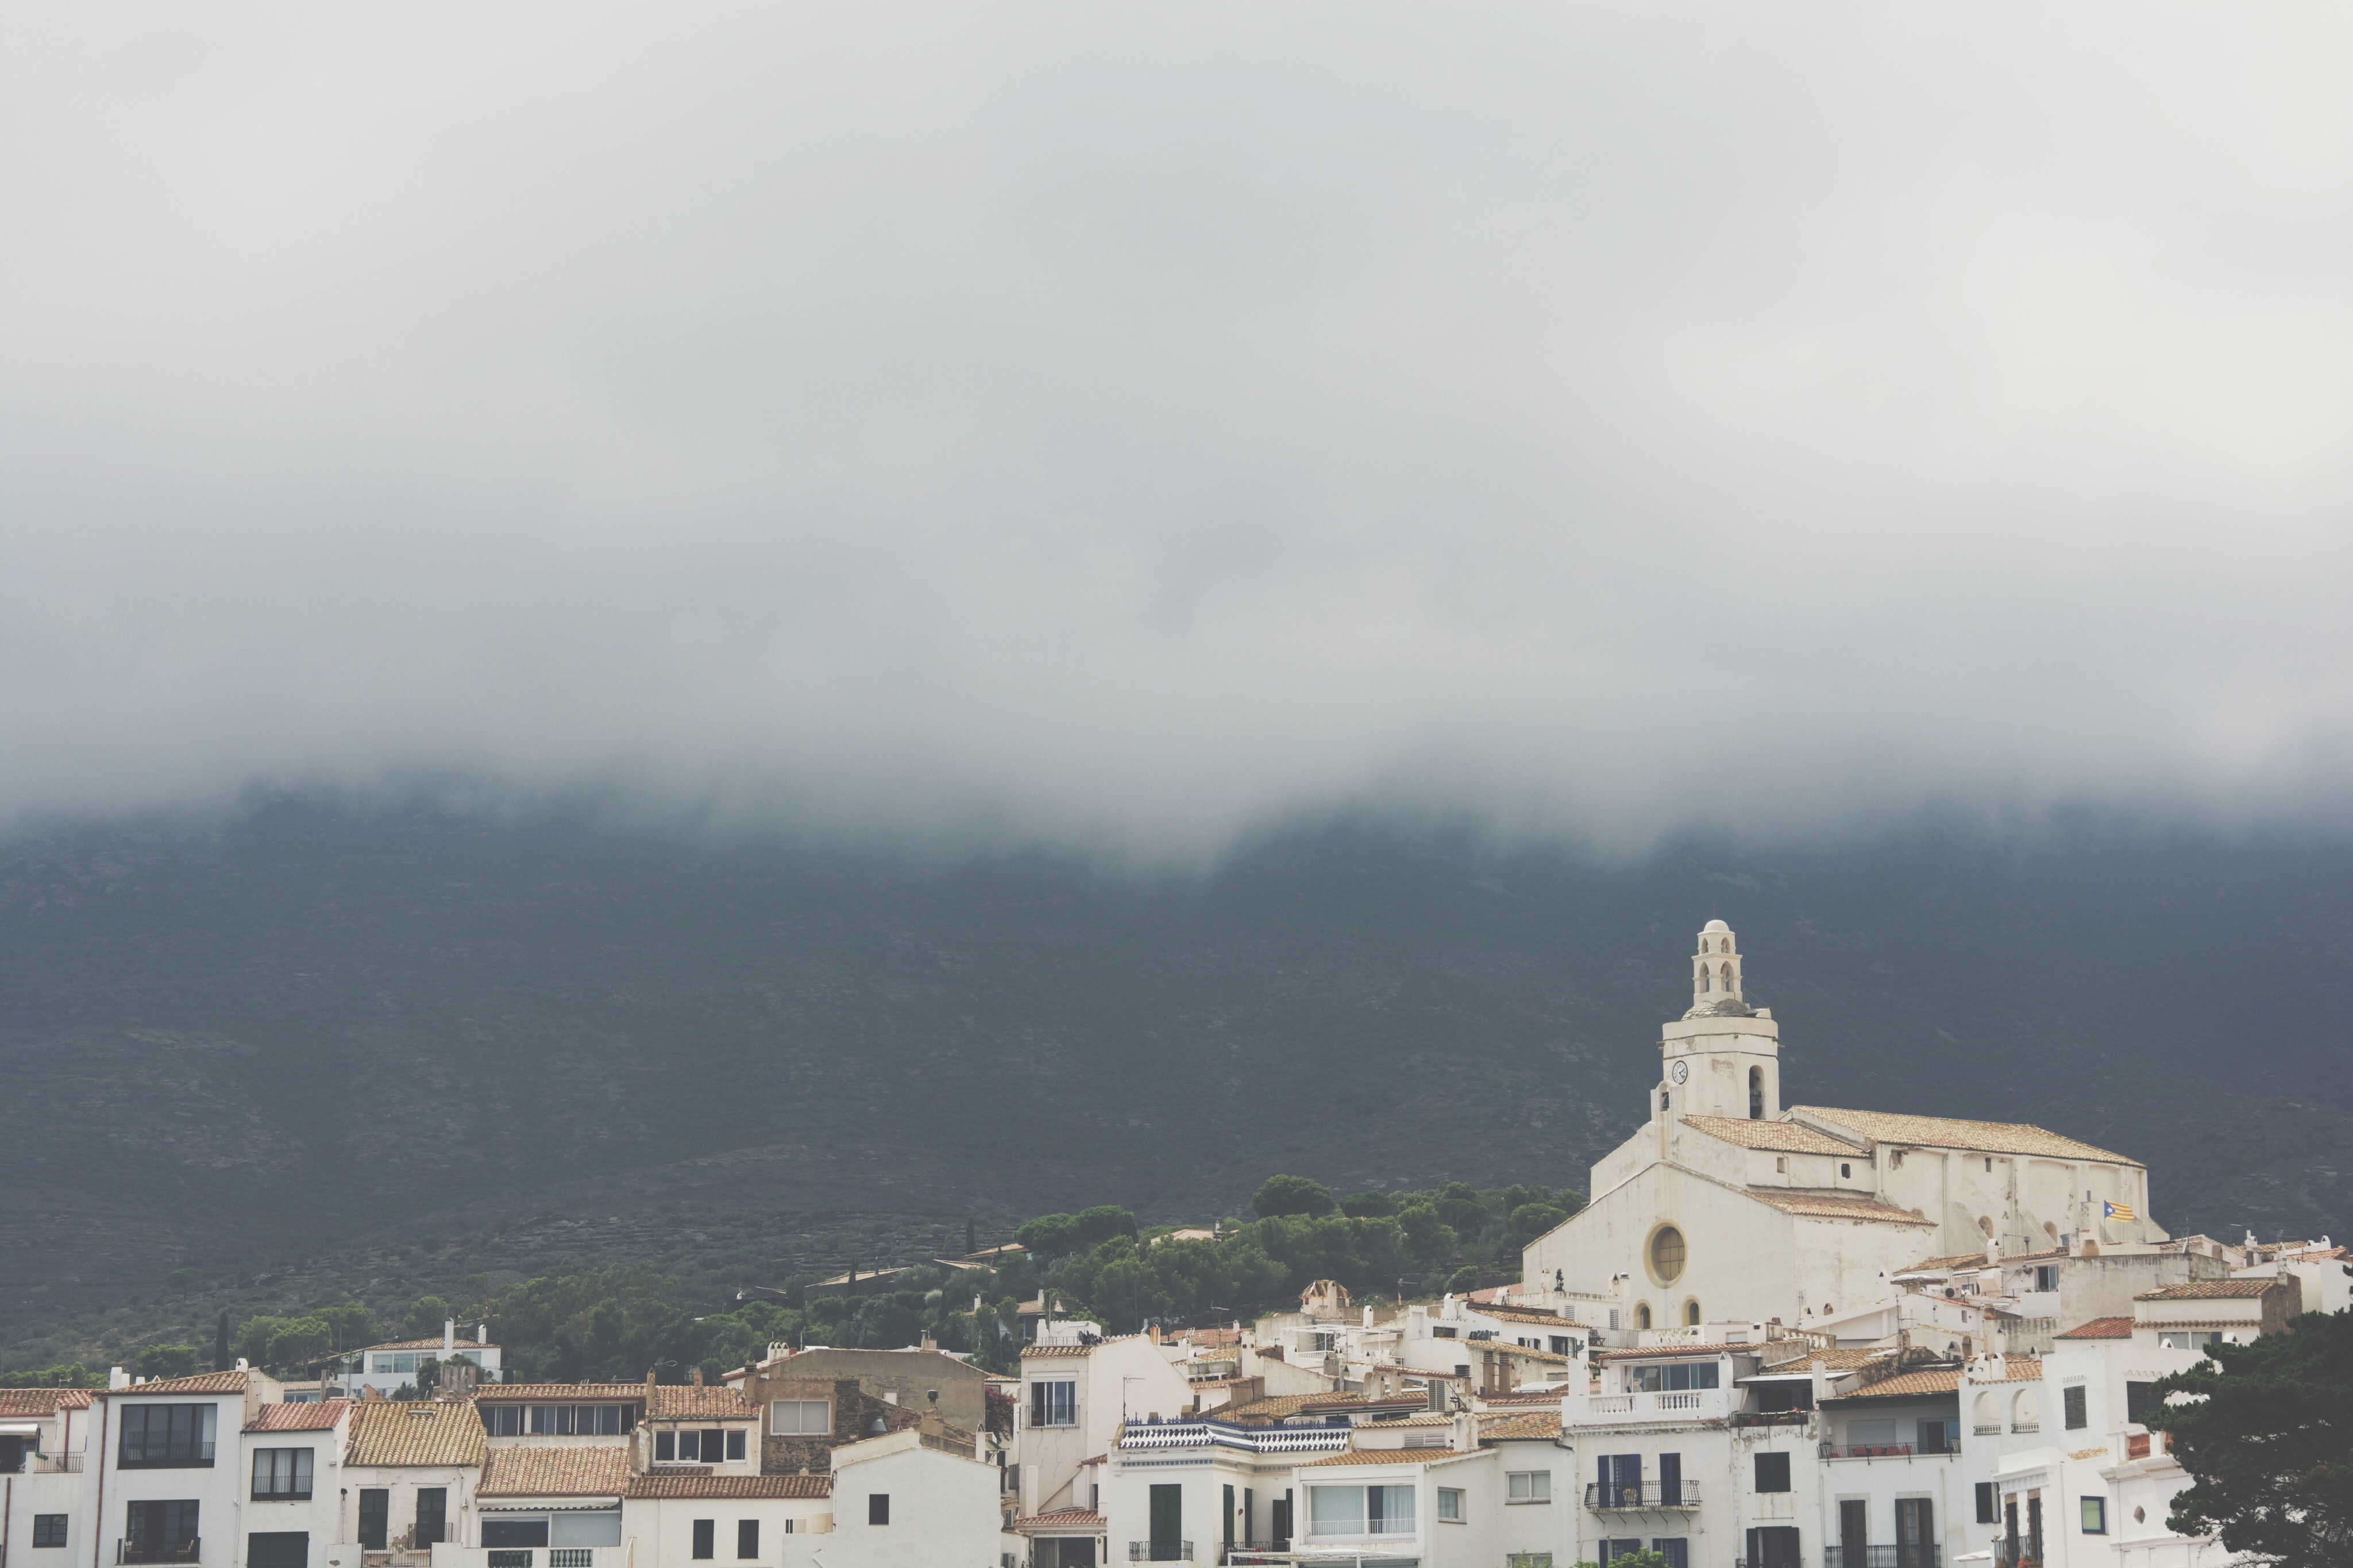 Aerial view of white buildings in Cadaqués